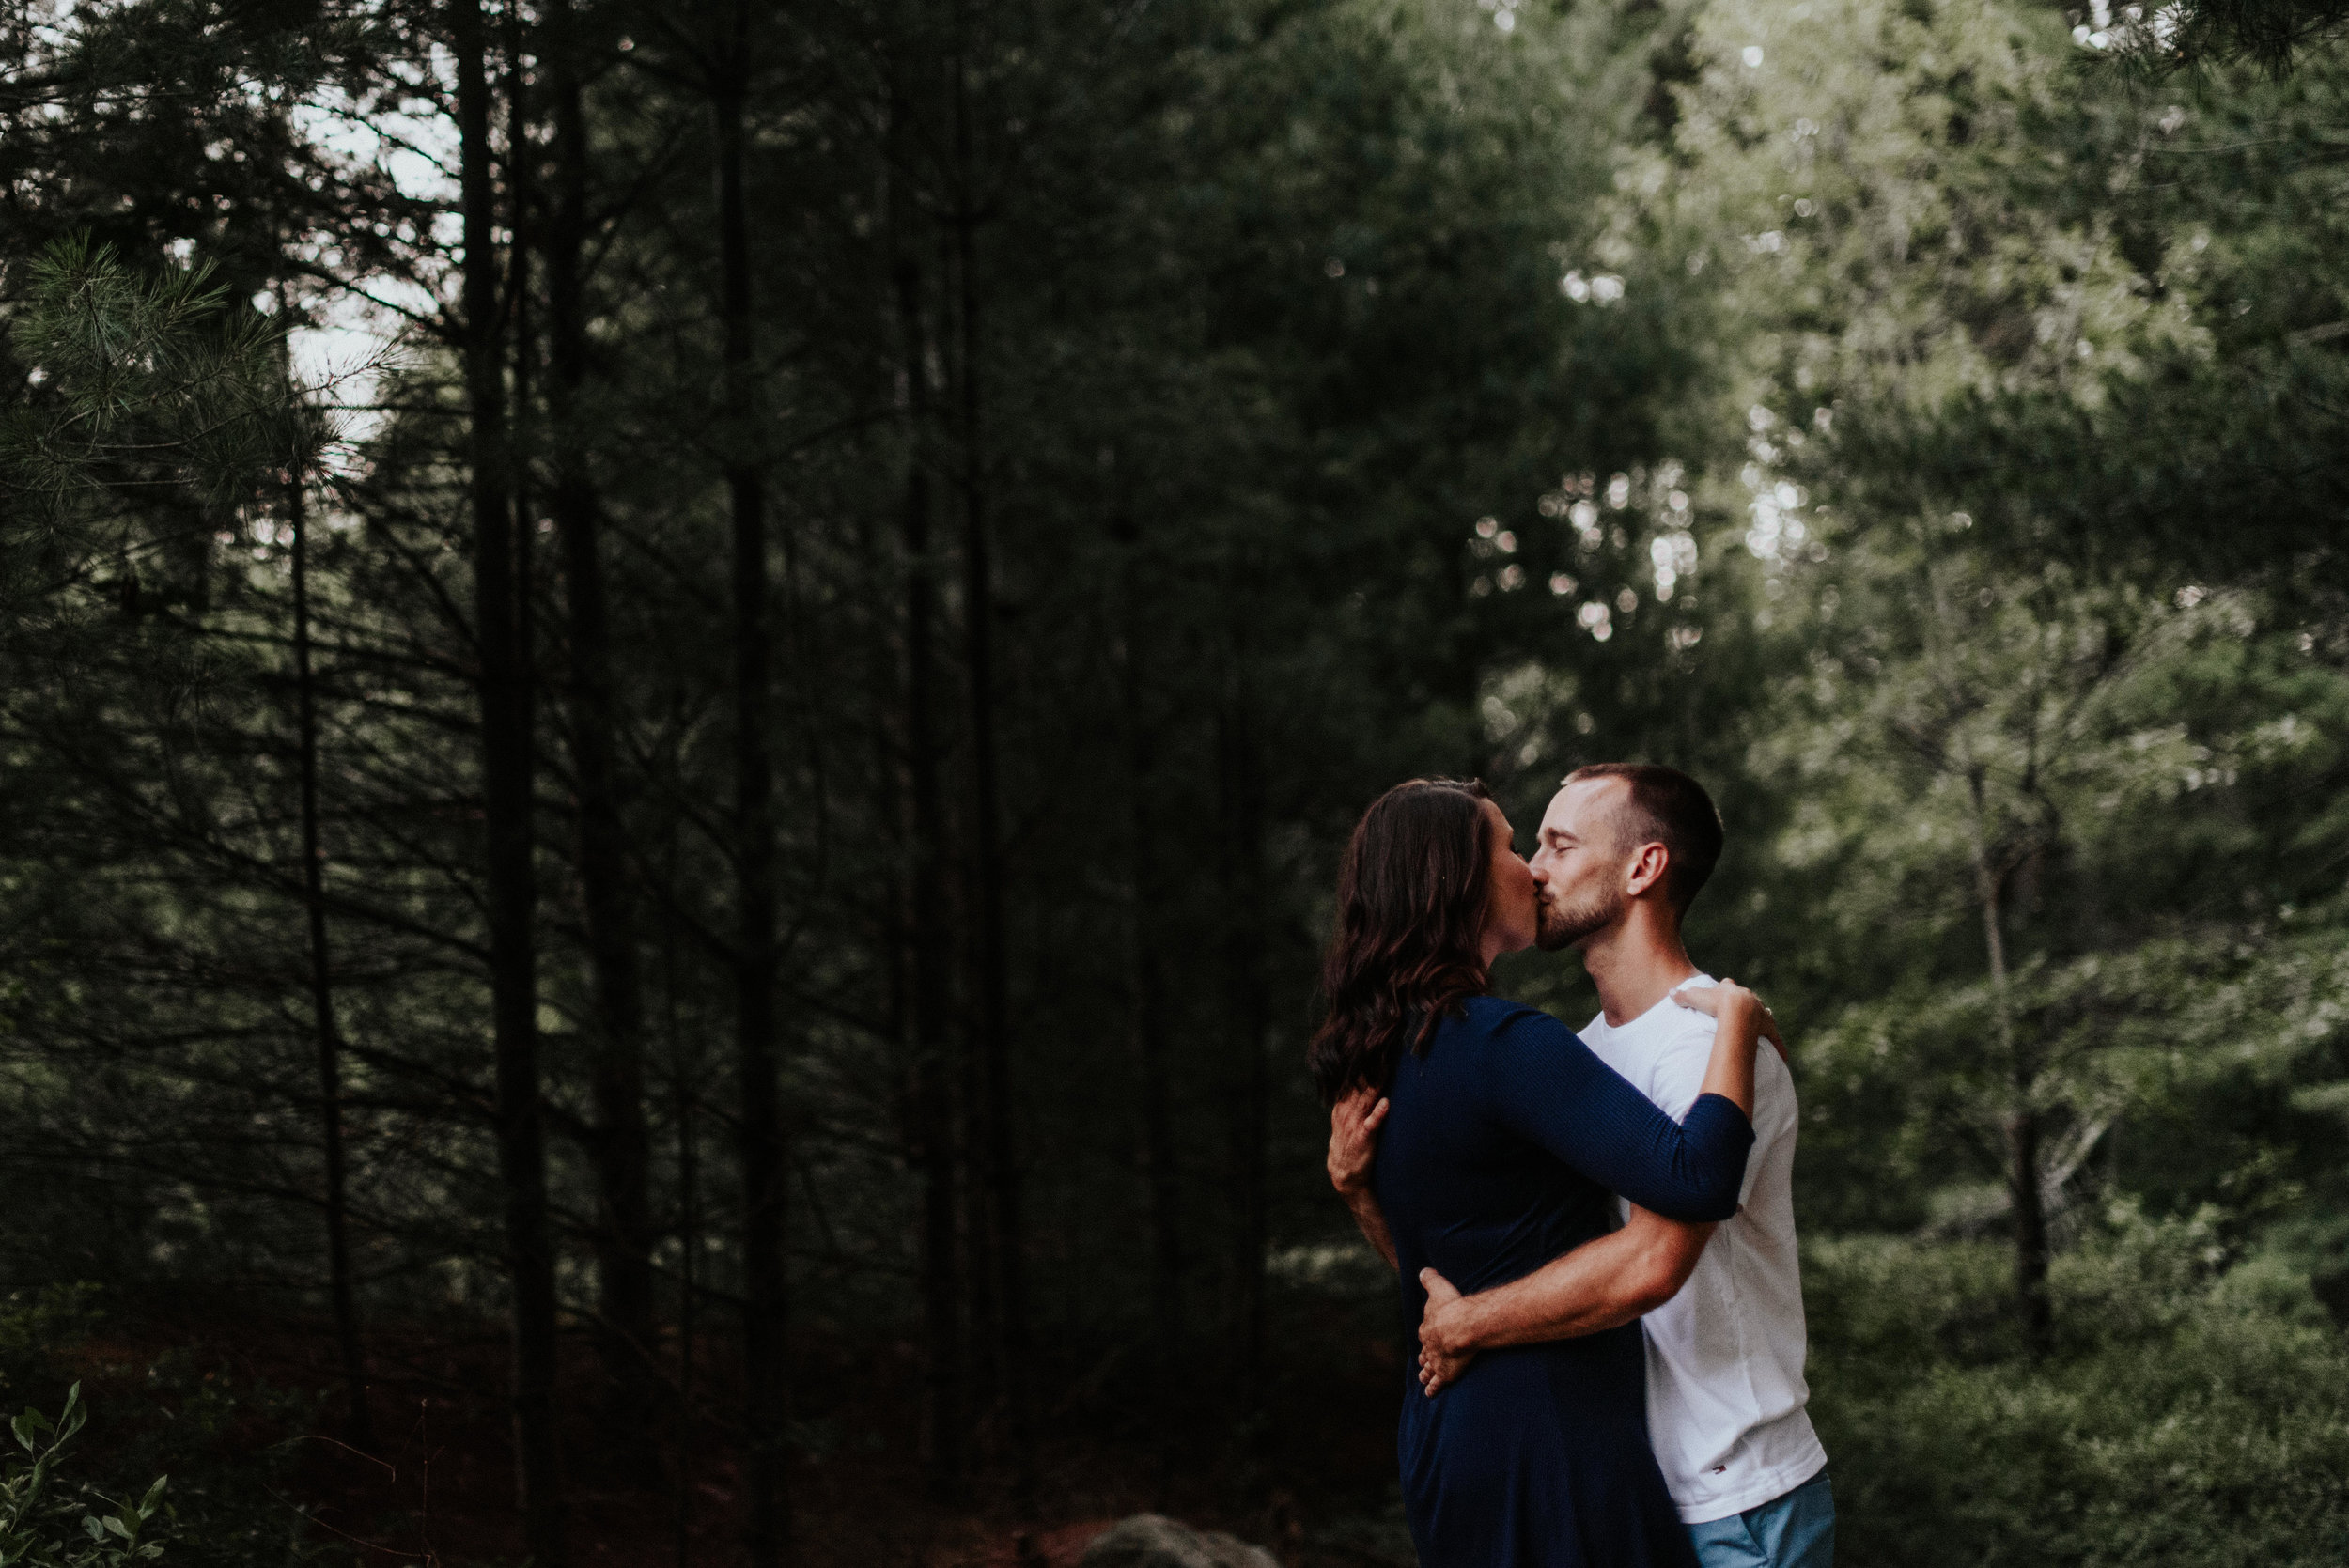 Amanda & Sean-Massachusetts-Forest Waterfront Engagement Session-Woodsy Outdoor Couples Session-Photographer-546.jpg